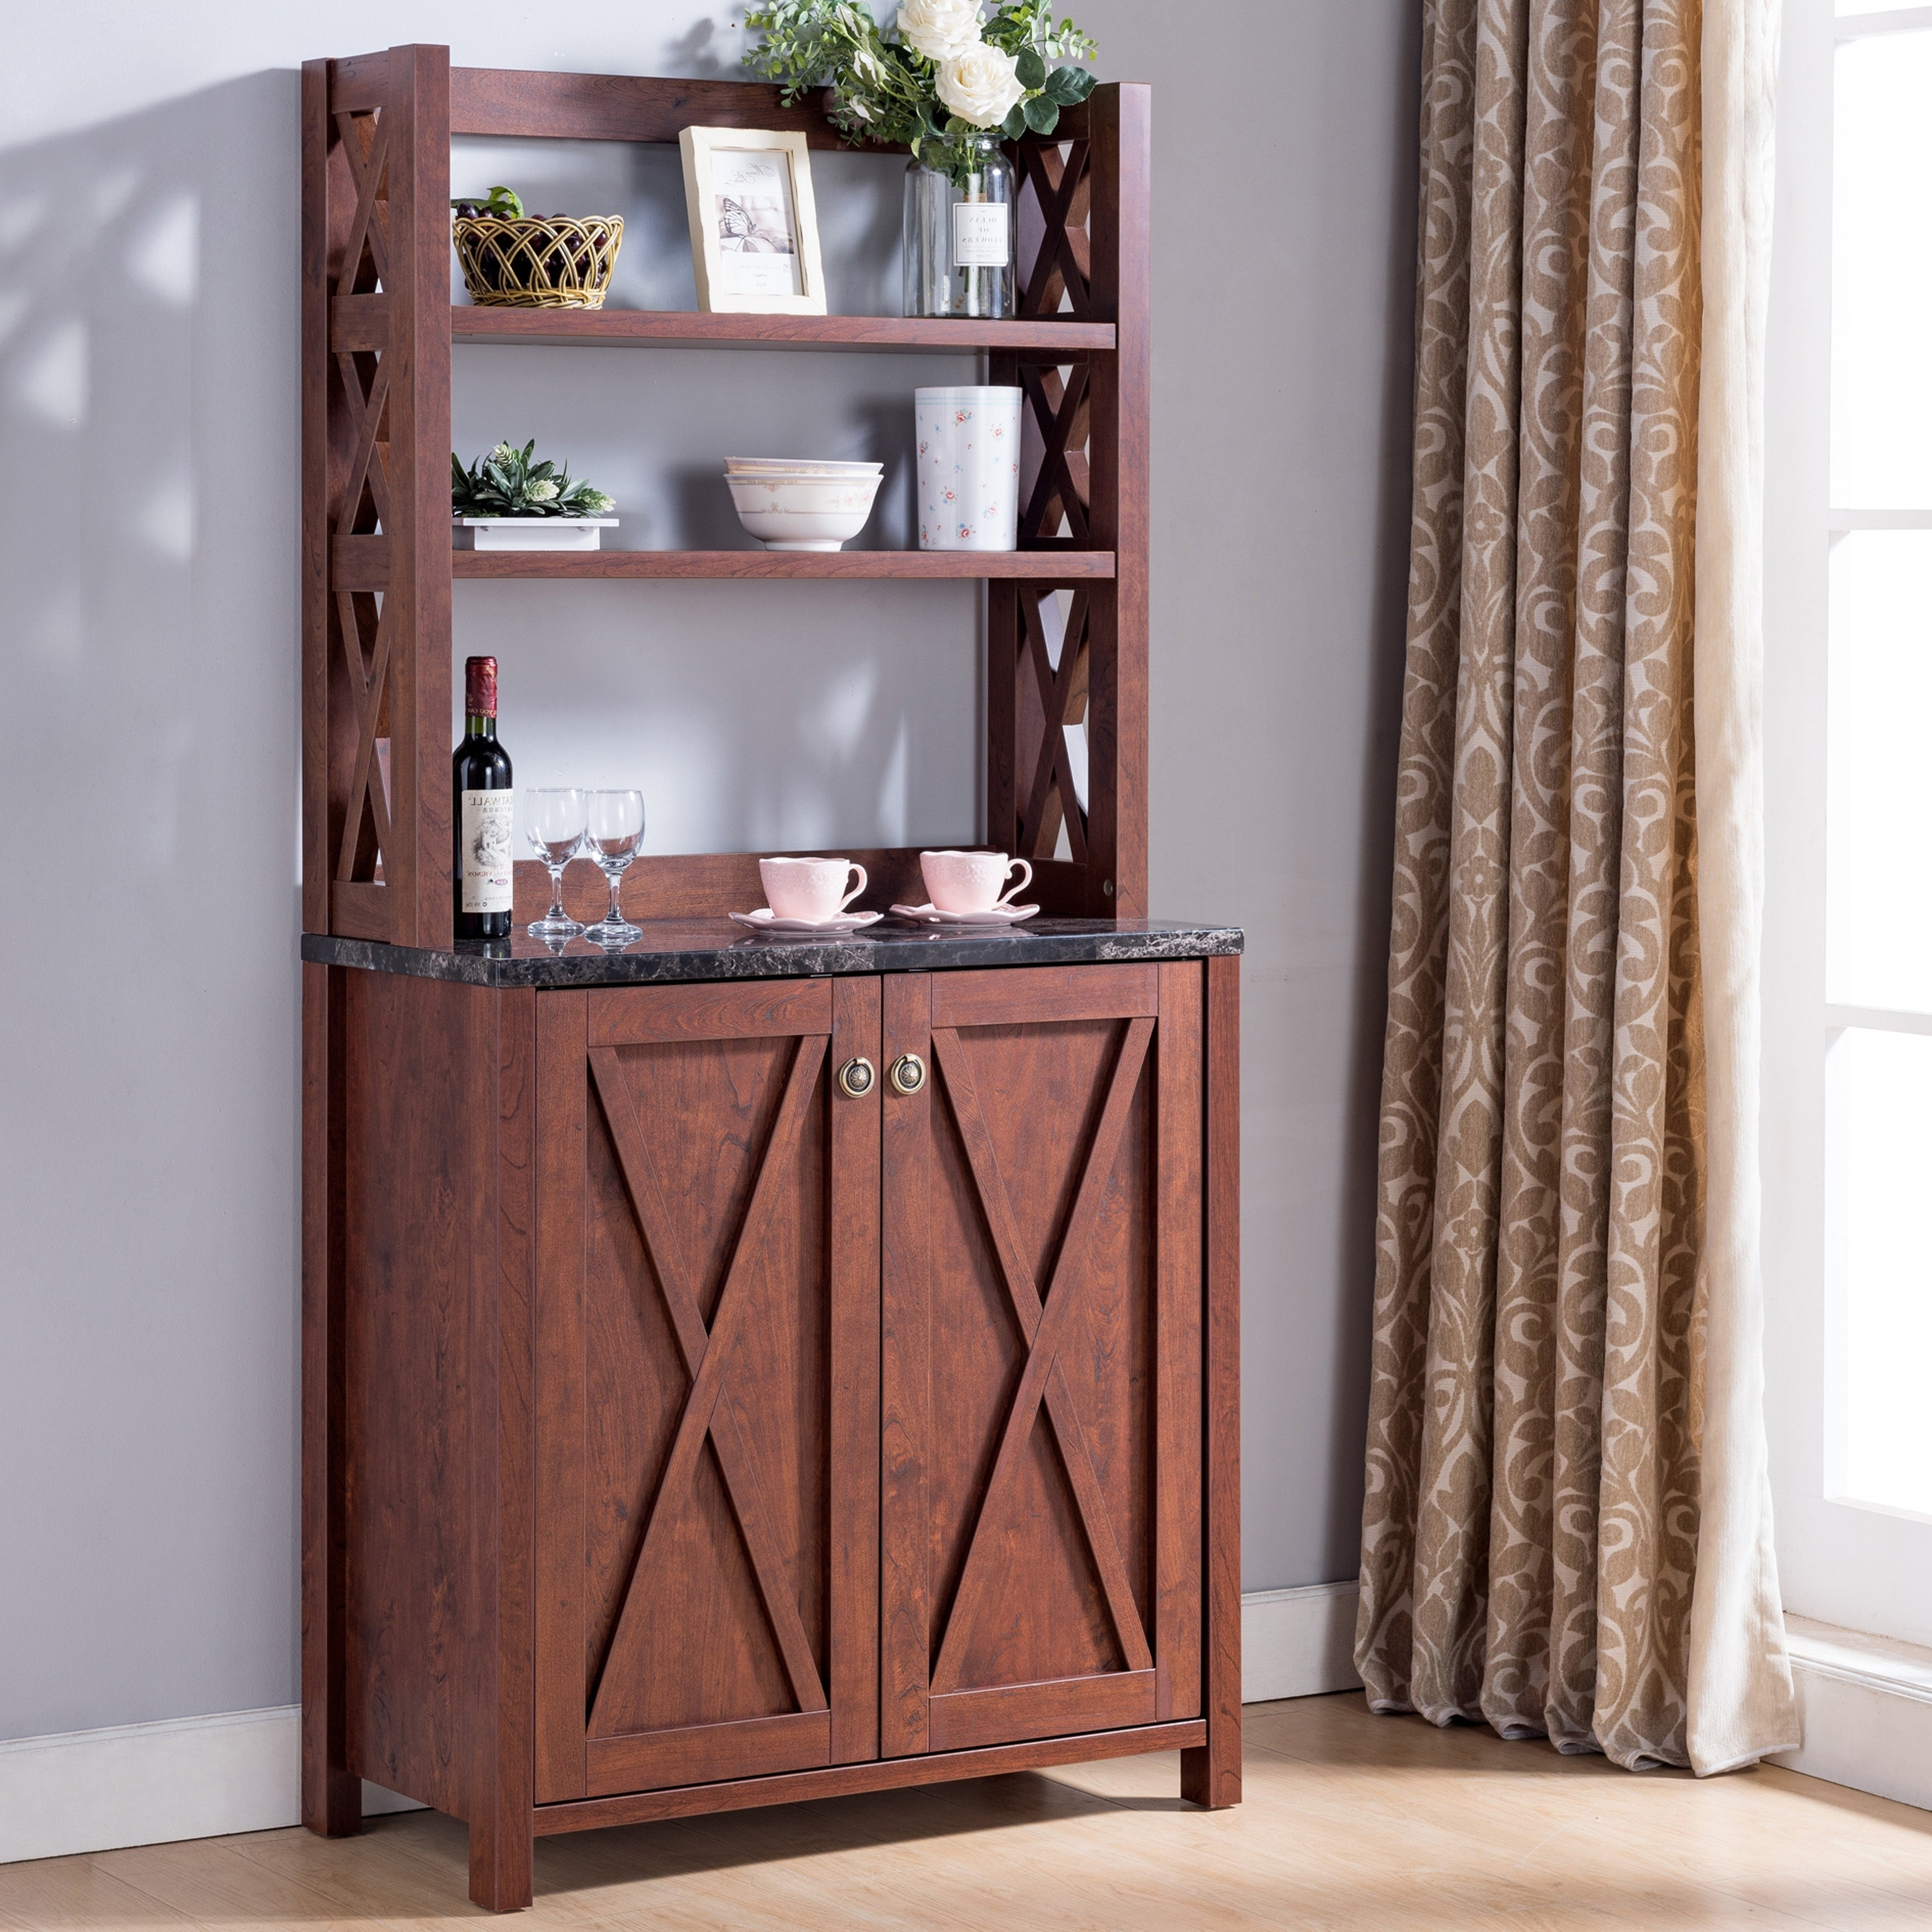 Details About Senna Rustic Farmhouse Kitchen Storage Hutchfoa Vintage Walnut Within Saucedo Rustic White Buffets (View 8 of 20)